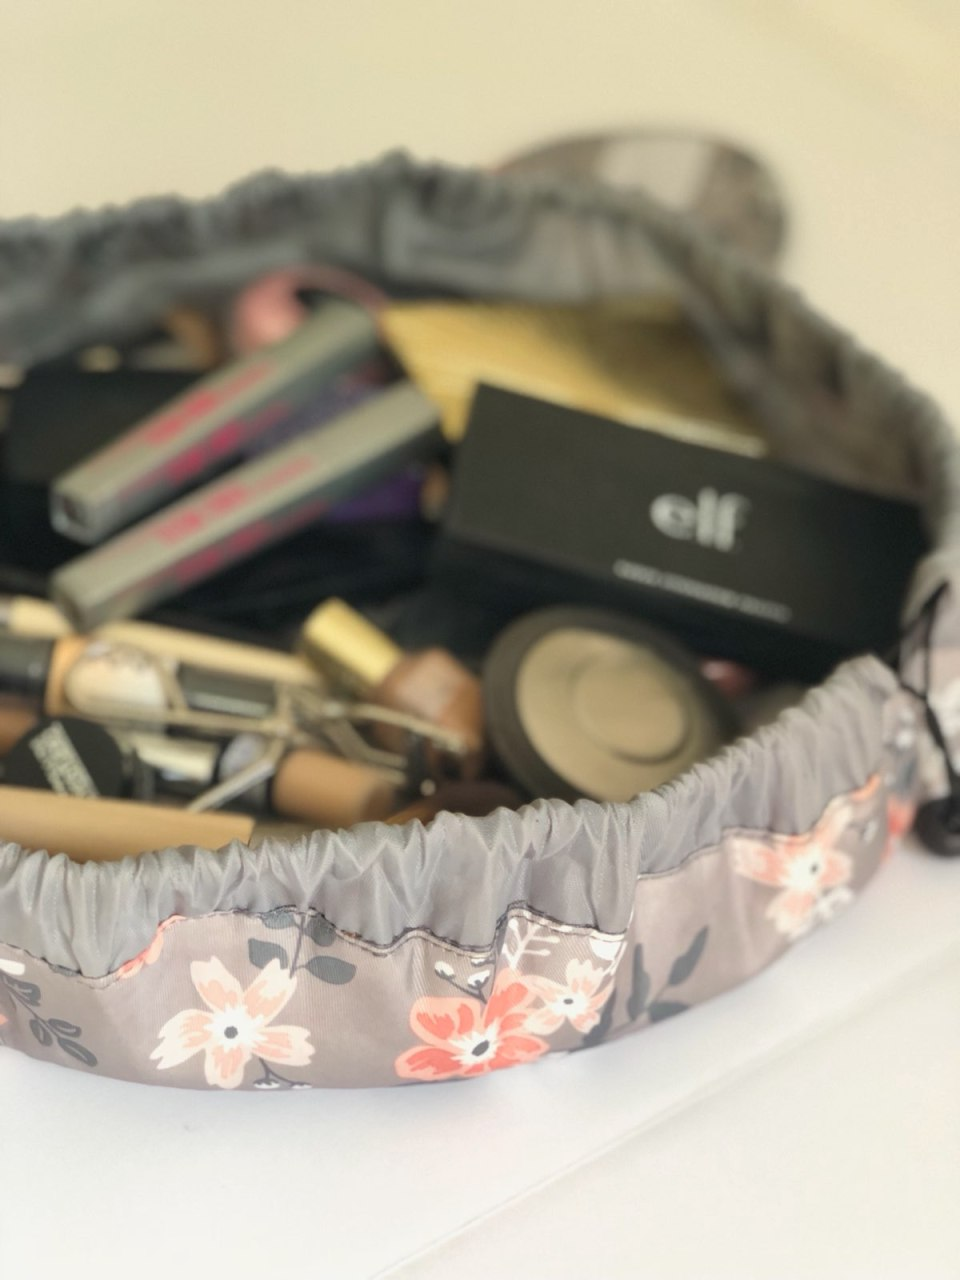 5 Best Drugstore Makeup Products You Need in Your Makeup Bag